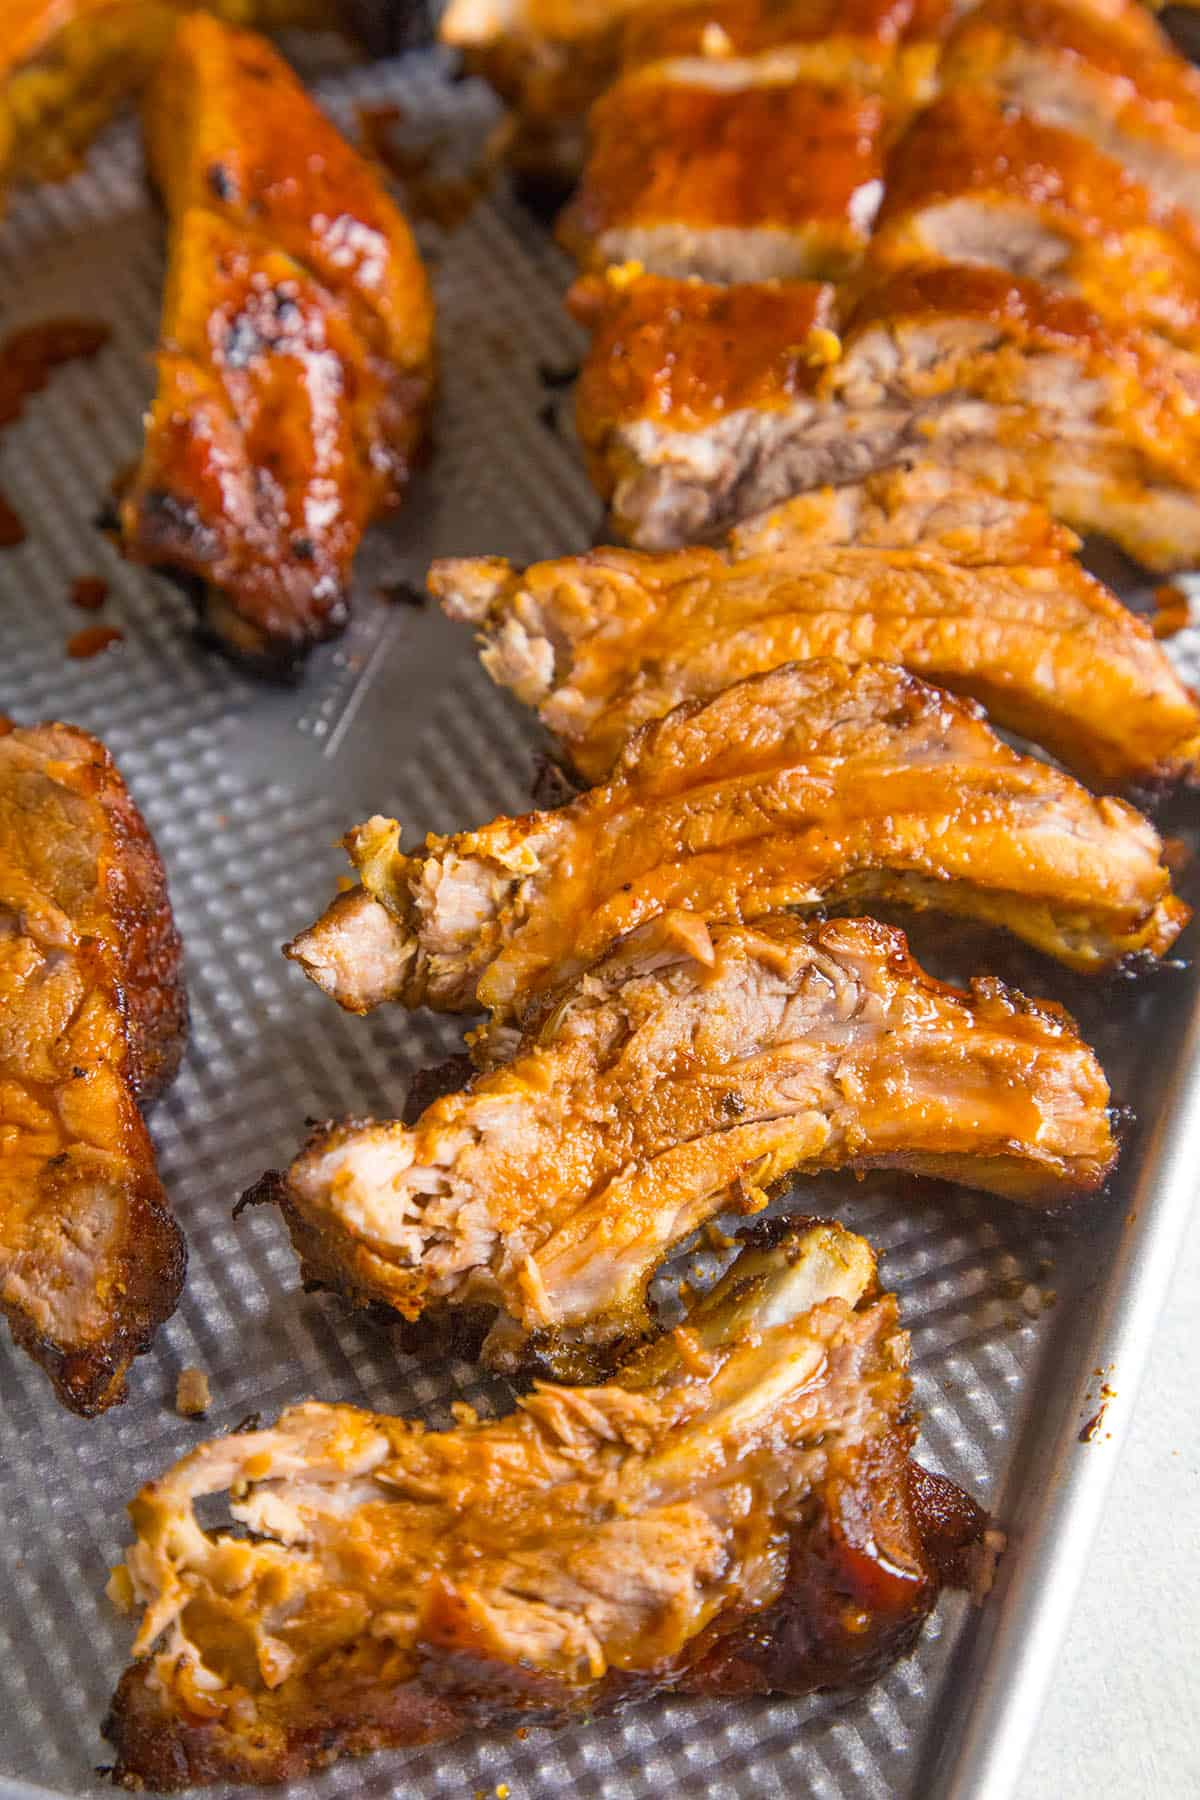 Oven Baked Ribs with Honey-Sriracha Glaze